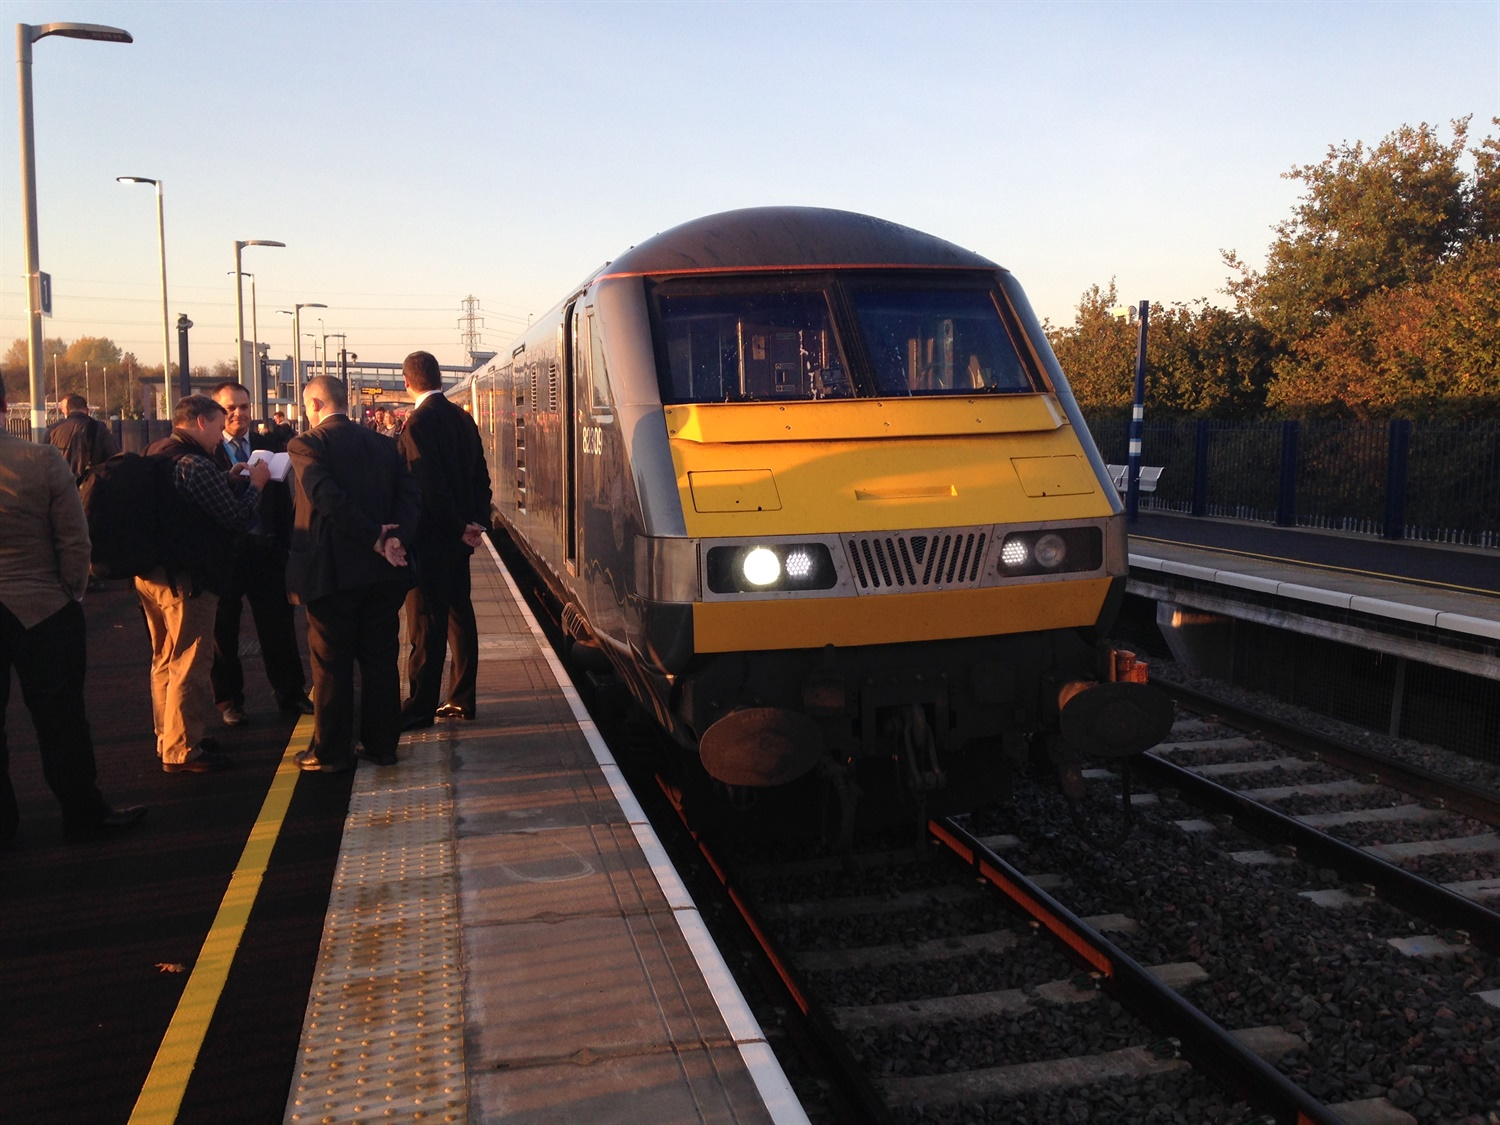 Chiltern Railways and Network Rail open new rail line connecting Oxford and London - 3